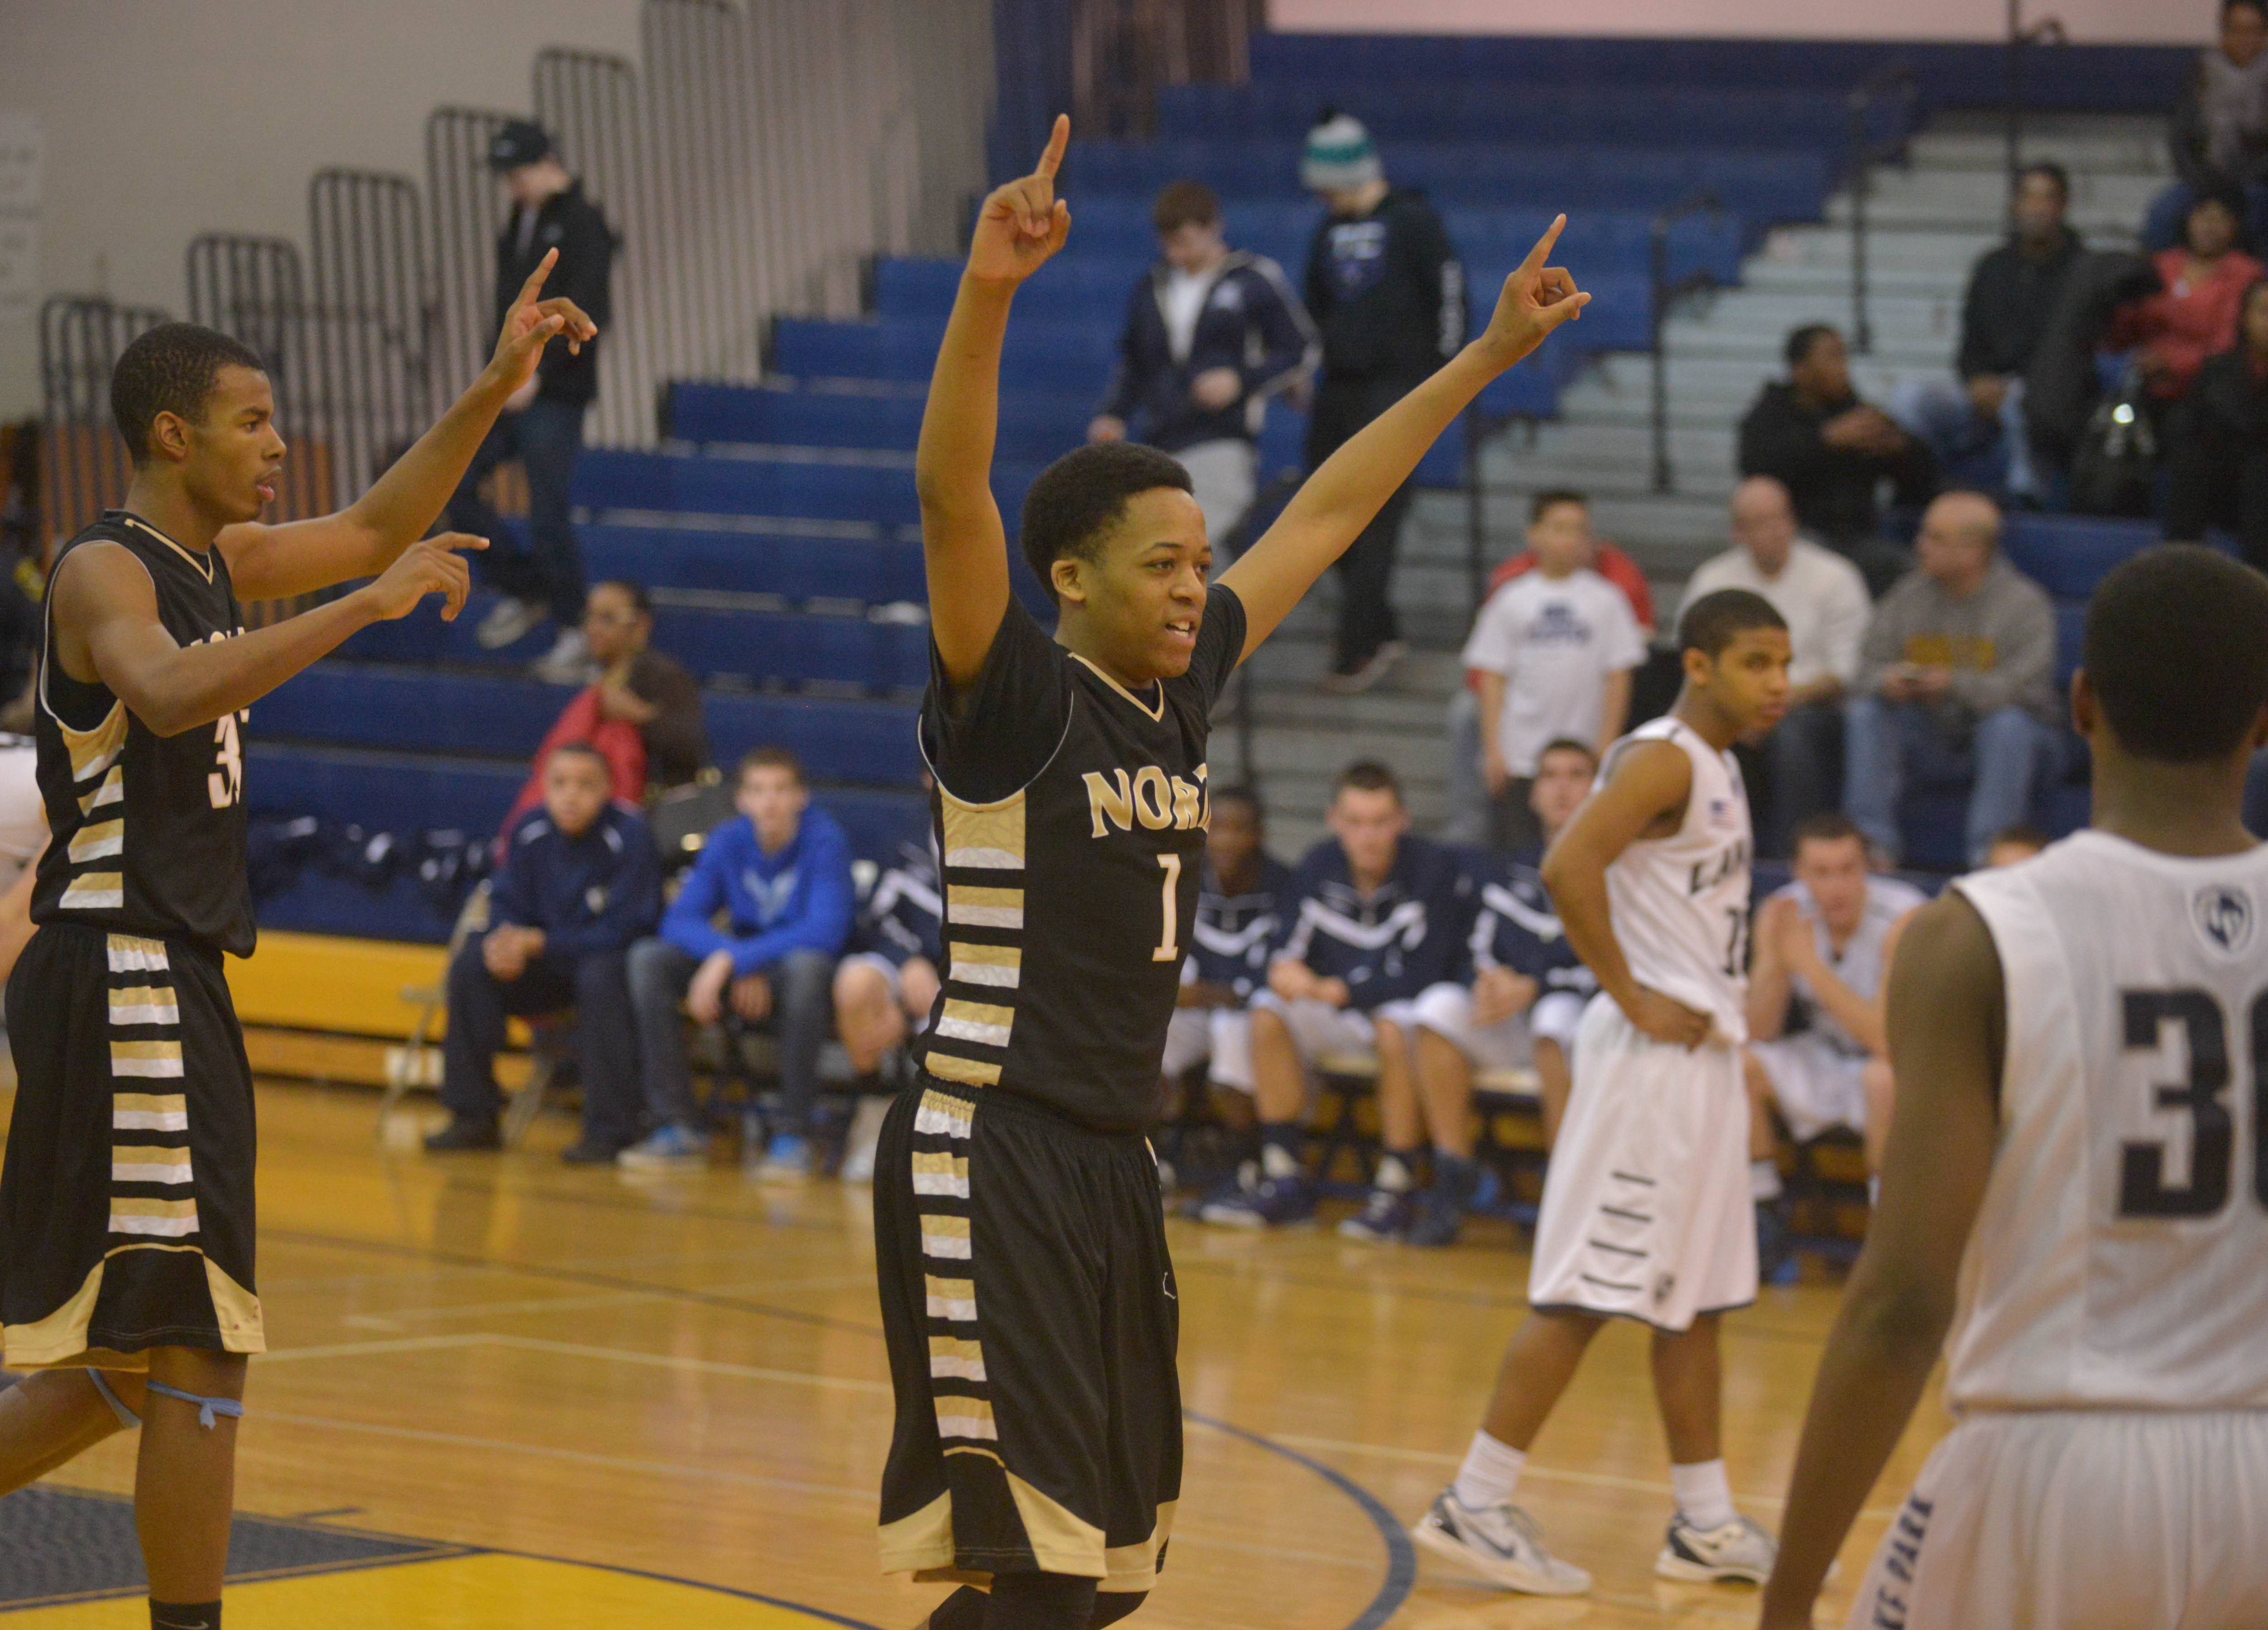 Jeremiah Fleming of Glenbard North celebrates.